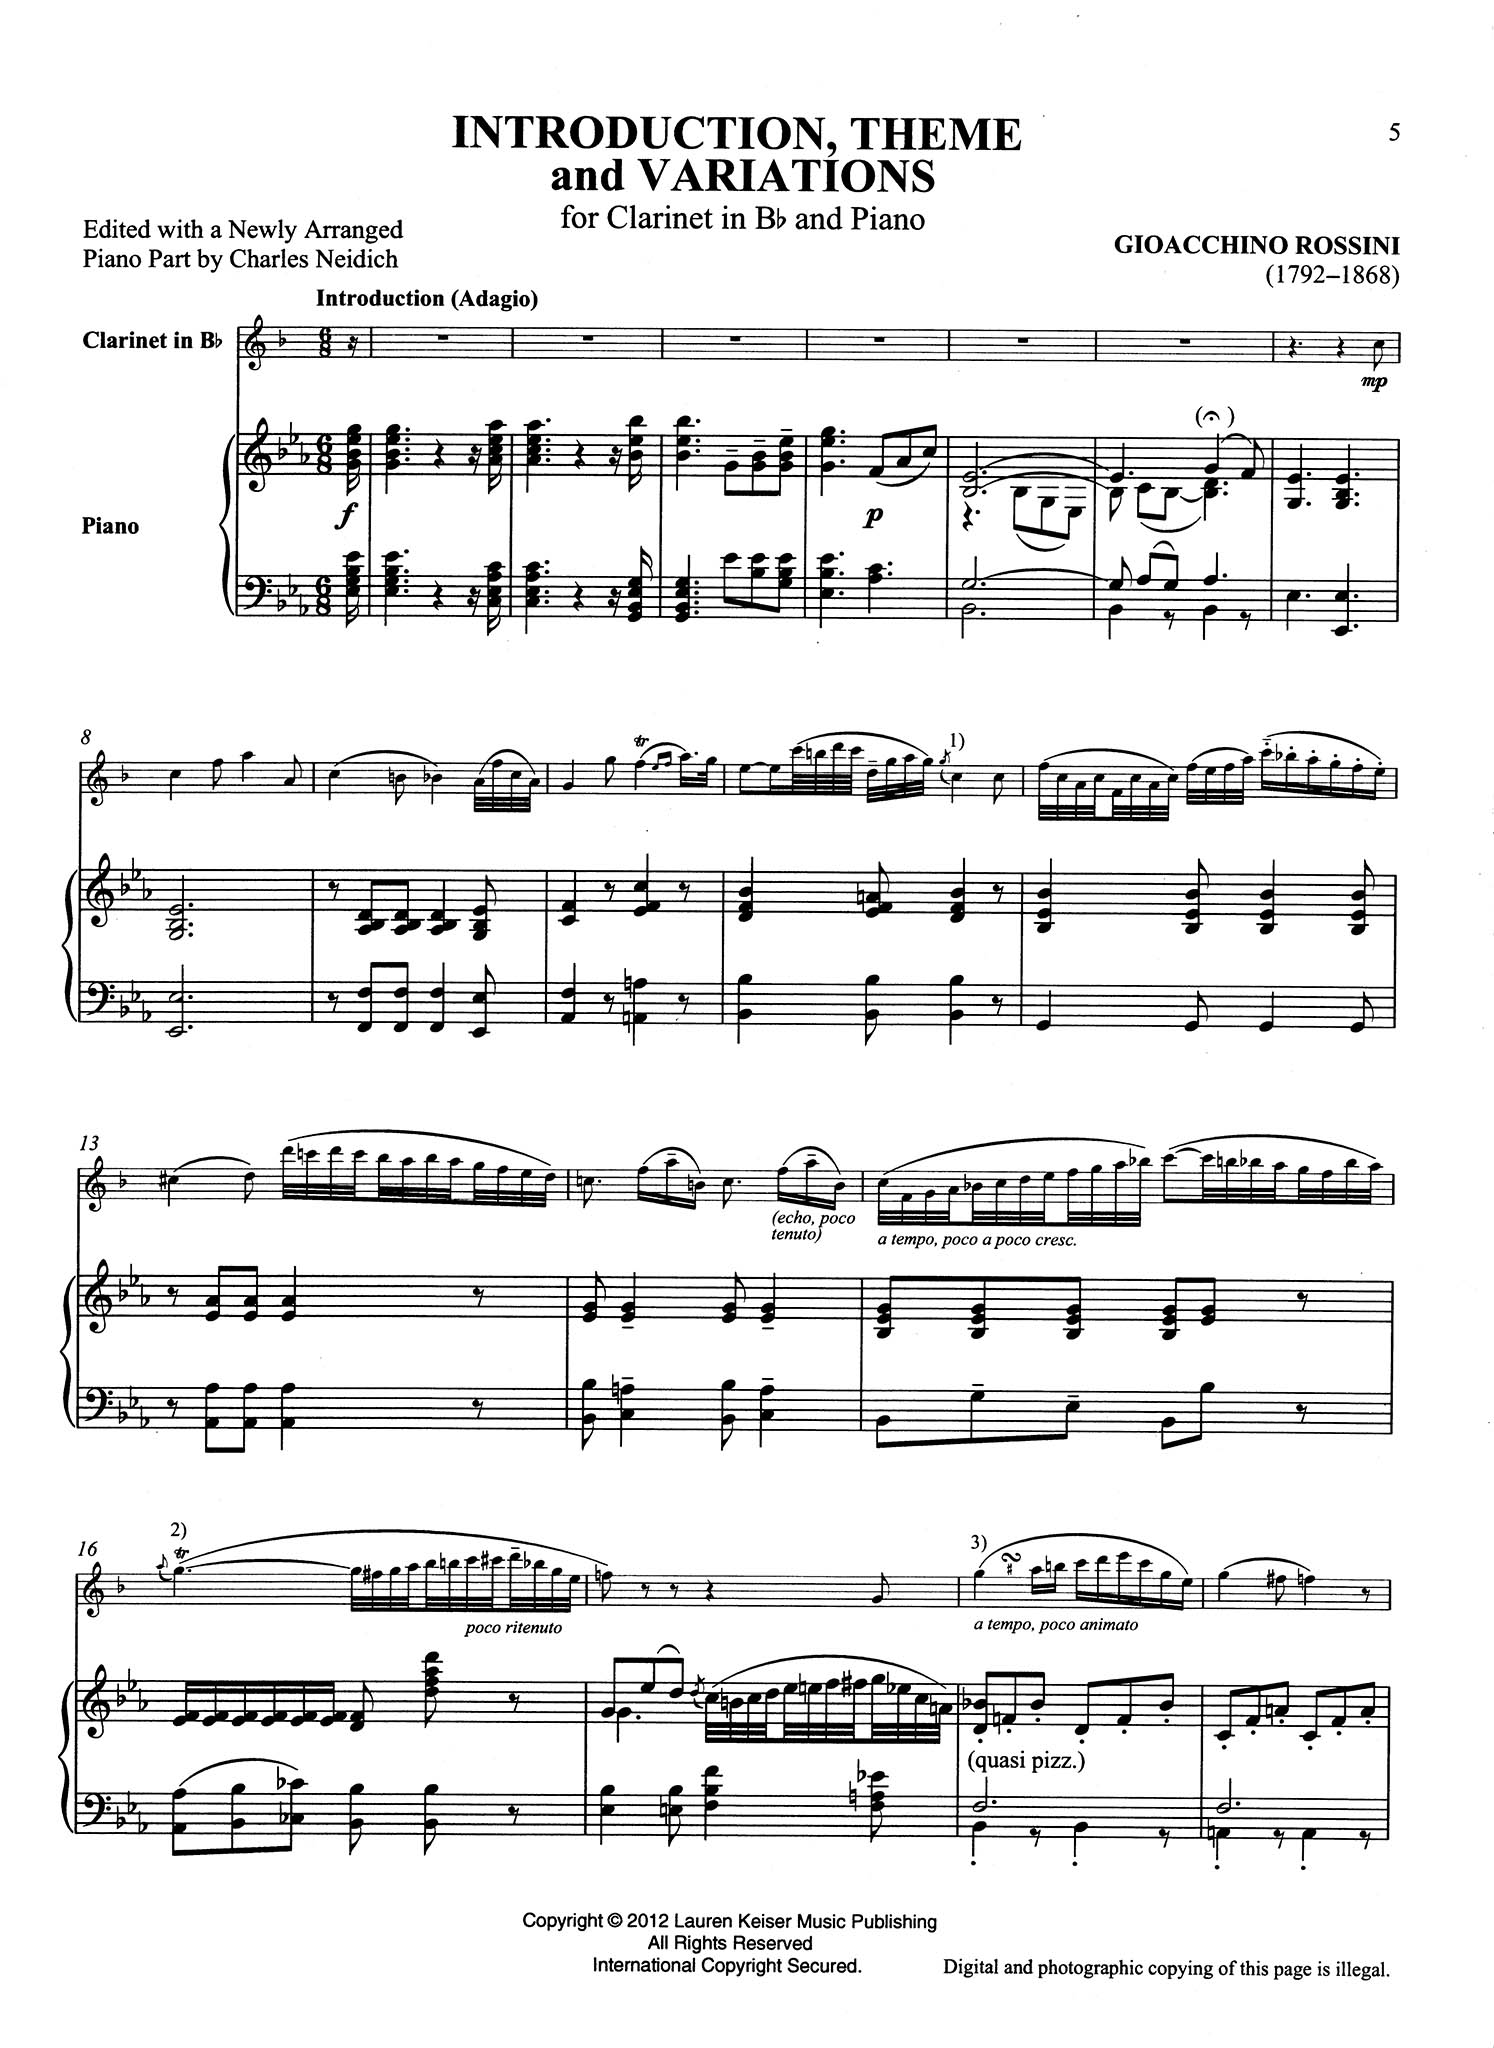 Introduction, Theme & Variations Score